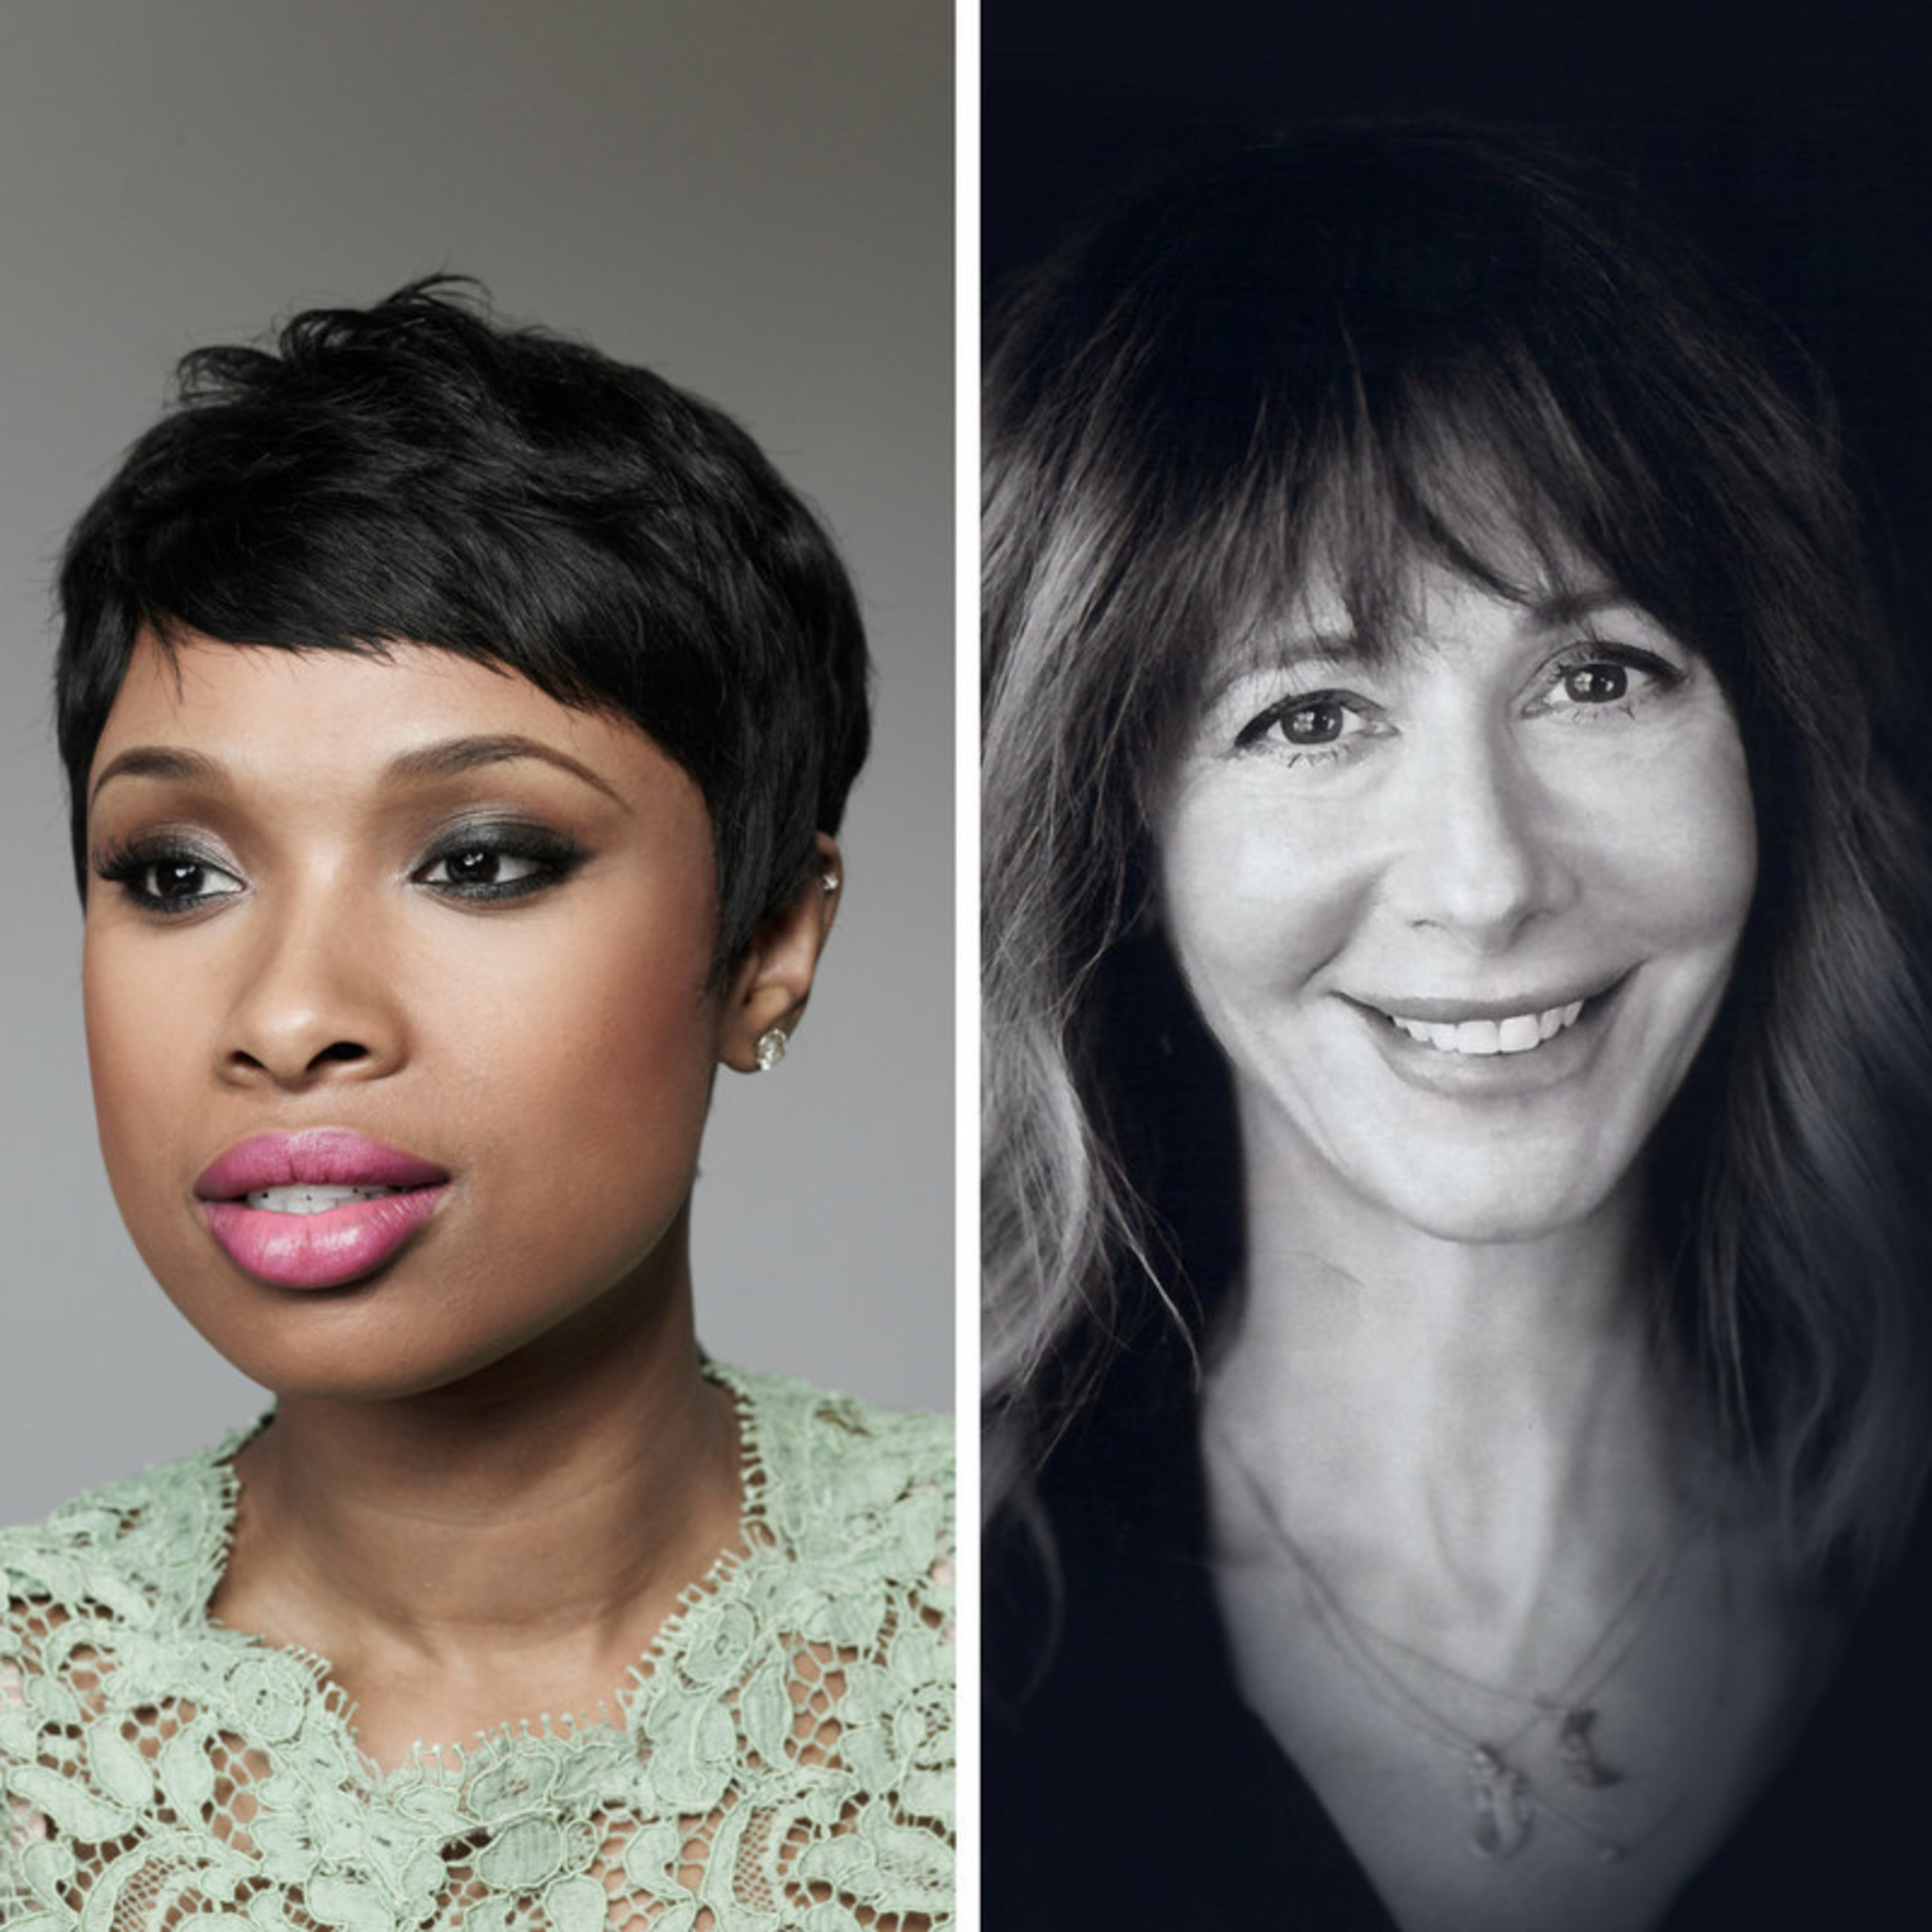 March of Dimes announces Grammy and Academy-Award winner Jennifer Hudson and Chairman & CEO of Universal Music Publishing Group Jody Gerson as 2016 honorees for the sixth annual March of Dimes Celebration of Babies(R): A Hollywood Luncheon, taking place December 9th at the Beverly Wilshire Hotel in Los Angeles. (Jennifer Hudson's photo courtesy of Chris Floyd; photo agency Camera Press.)